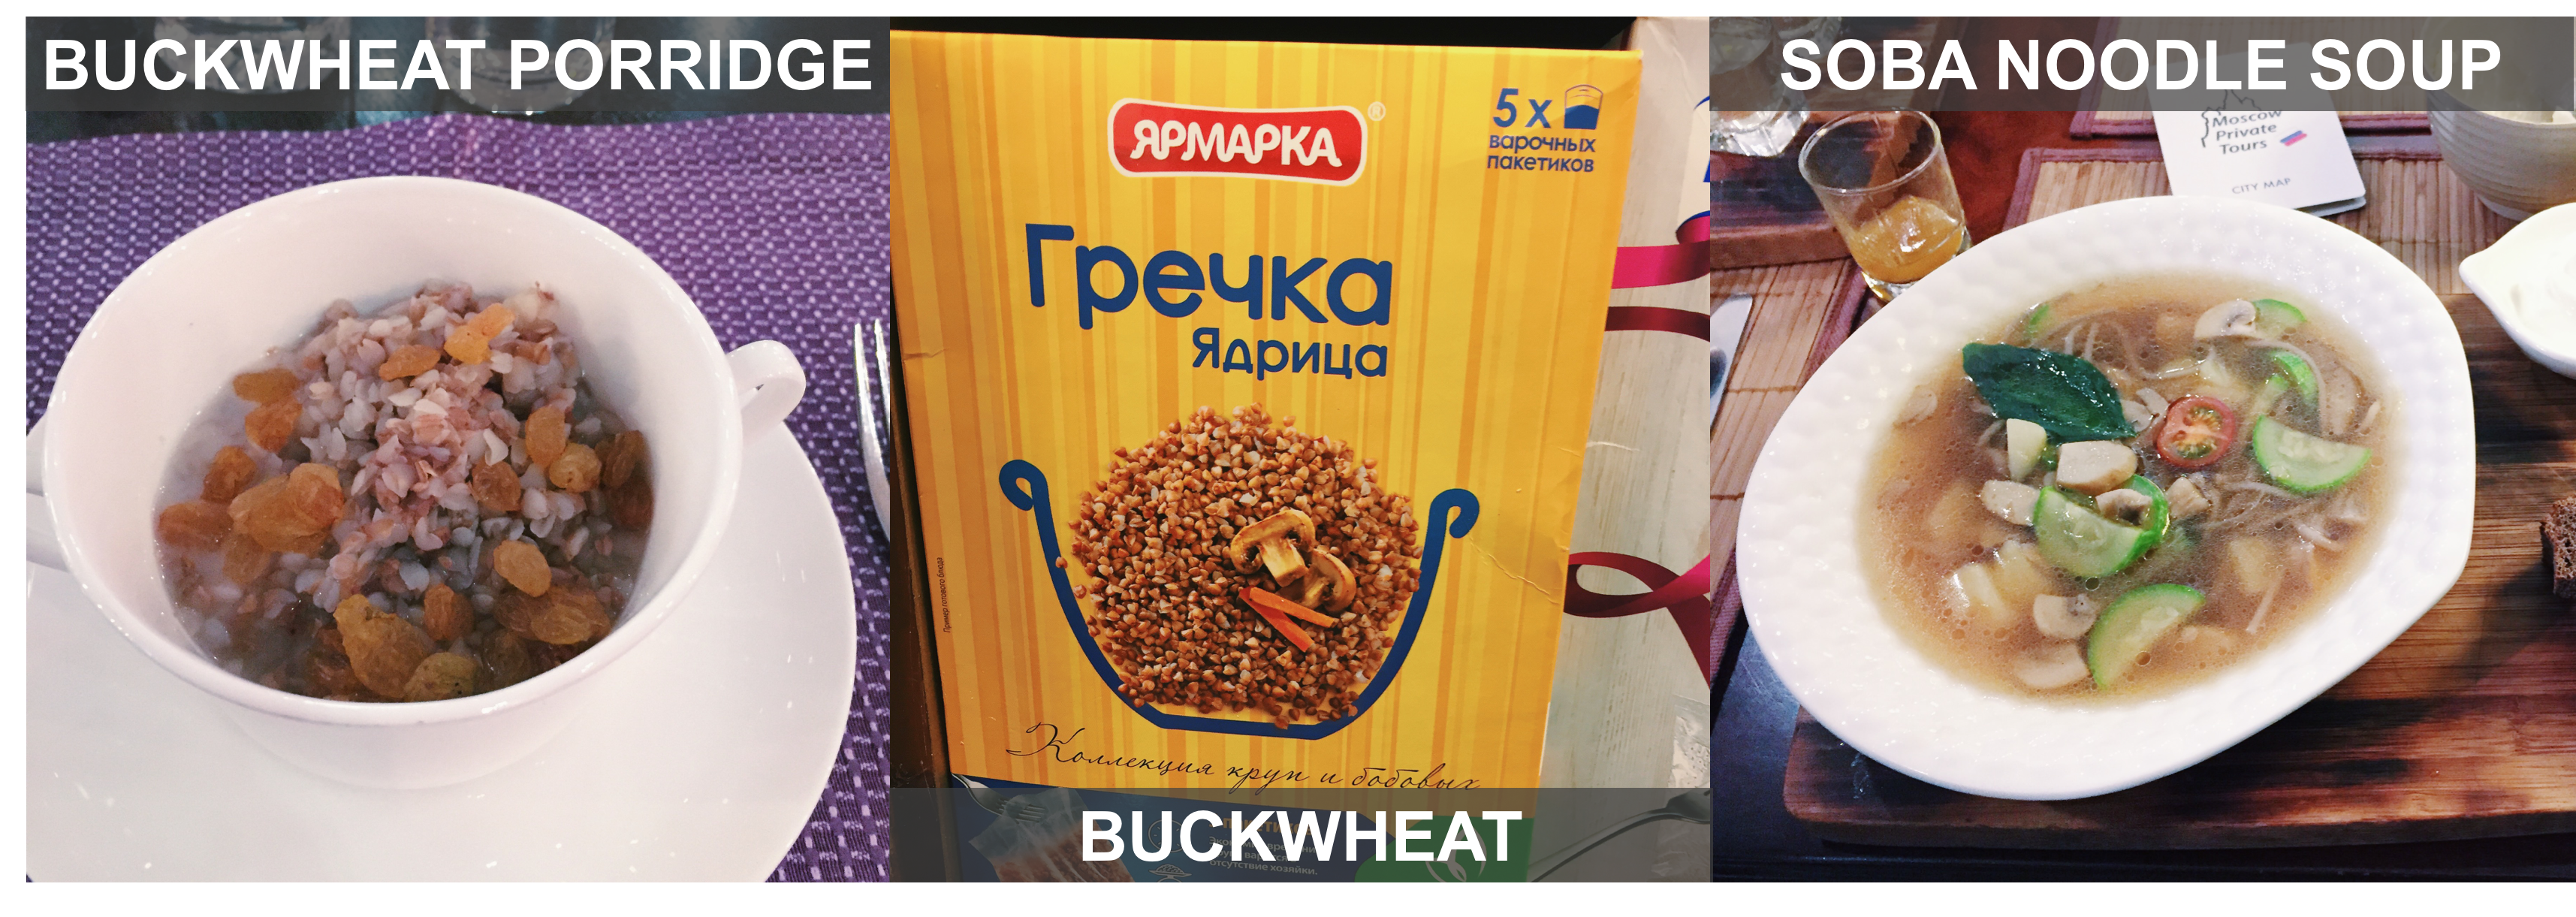 PICTURES OF BUCKWHEAT FROM MOSCOW